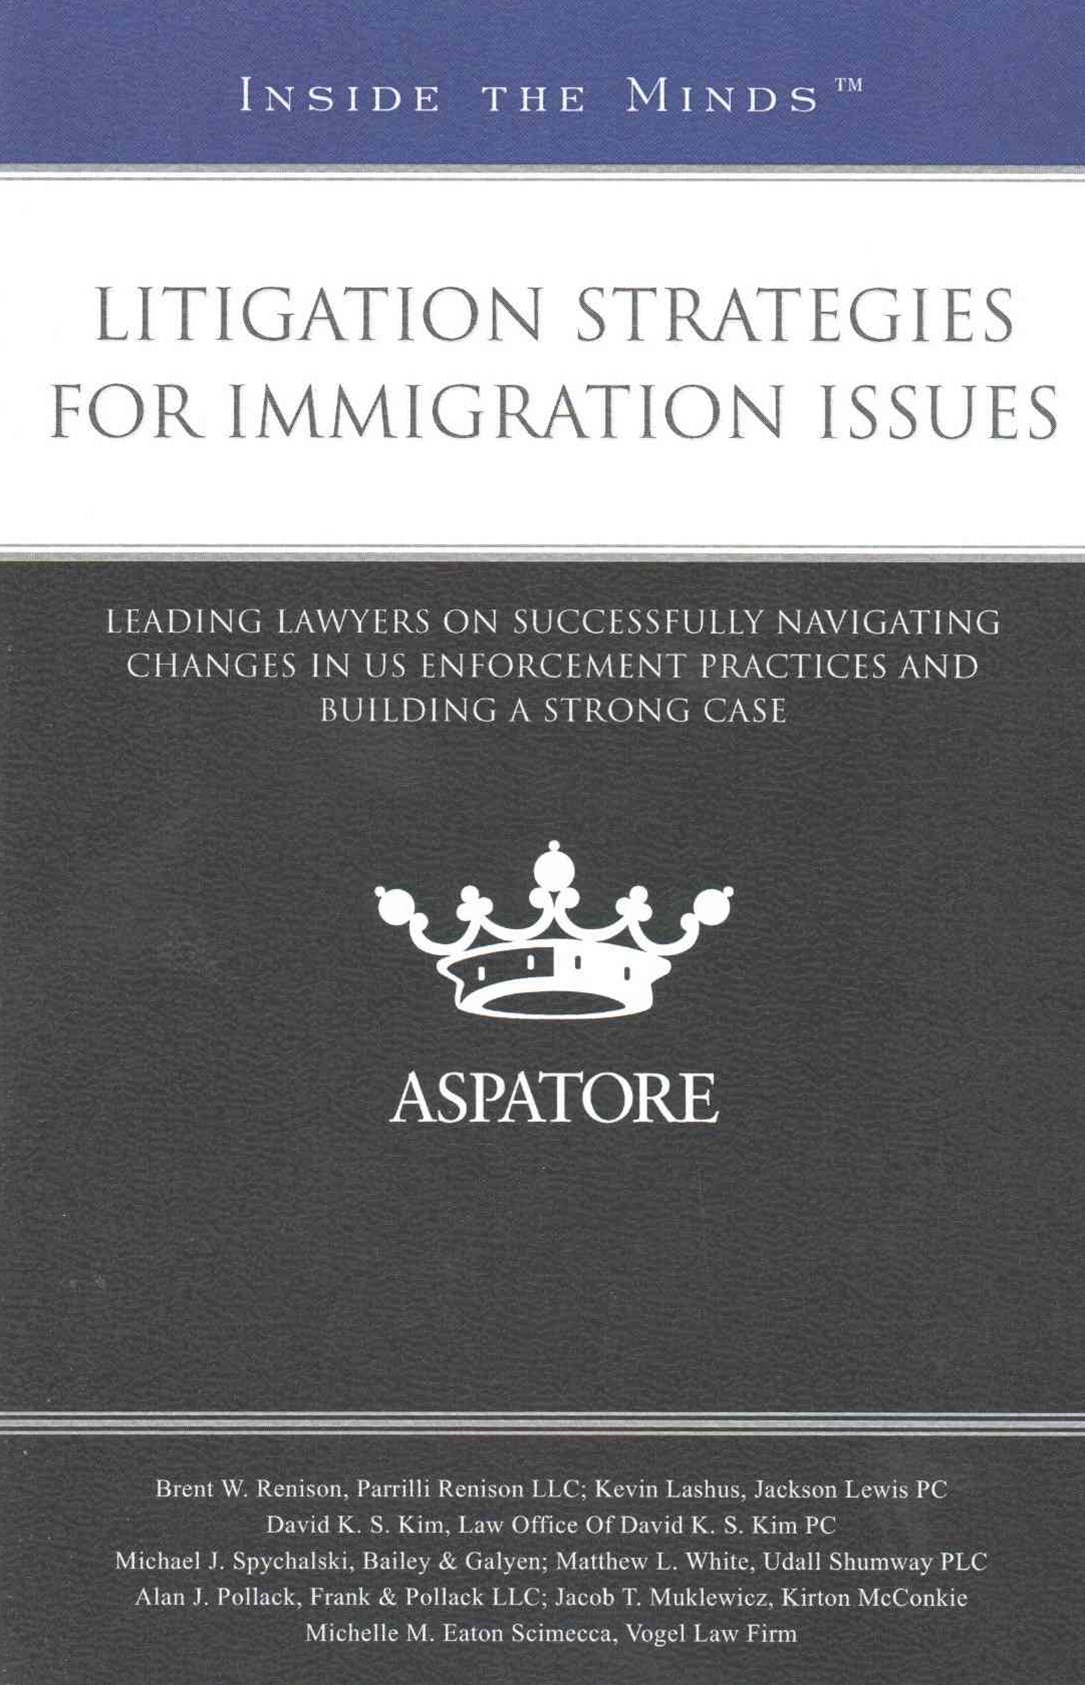 Litigation Strategies for Immigration Issues